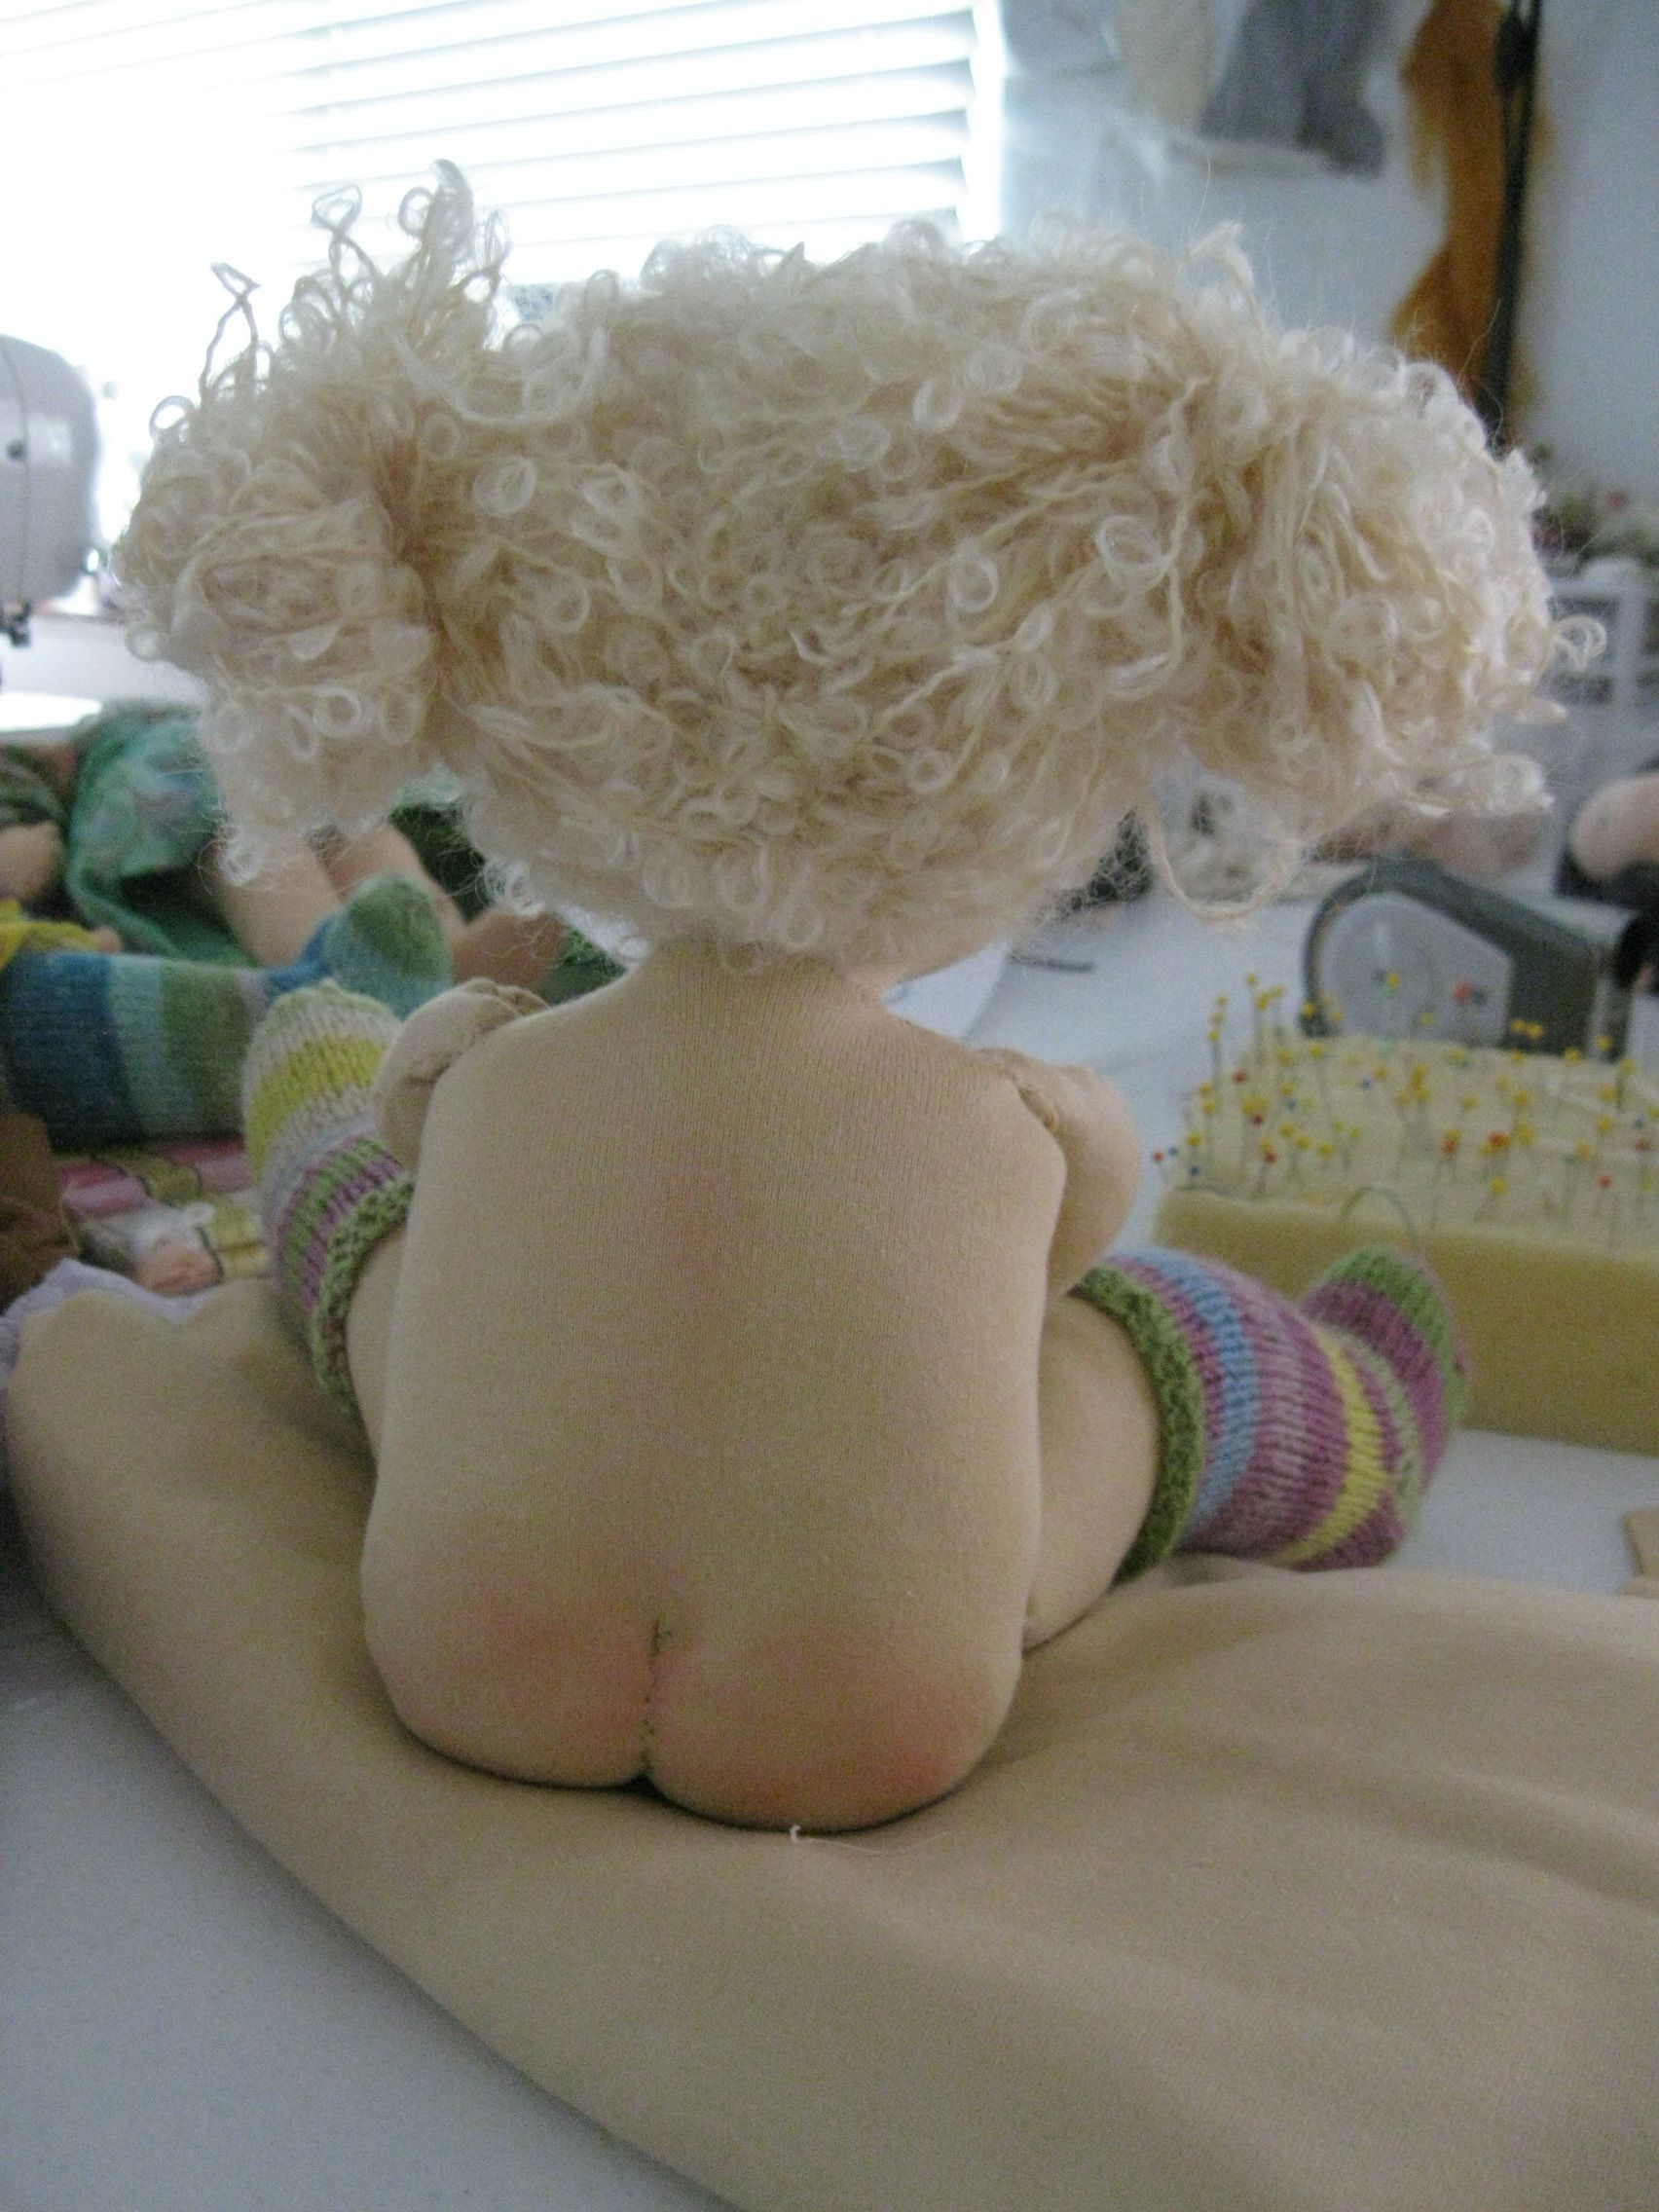 ... butt makers handmade handmade creations clothes pals doll clothes